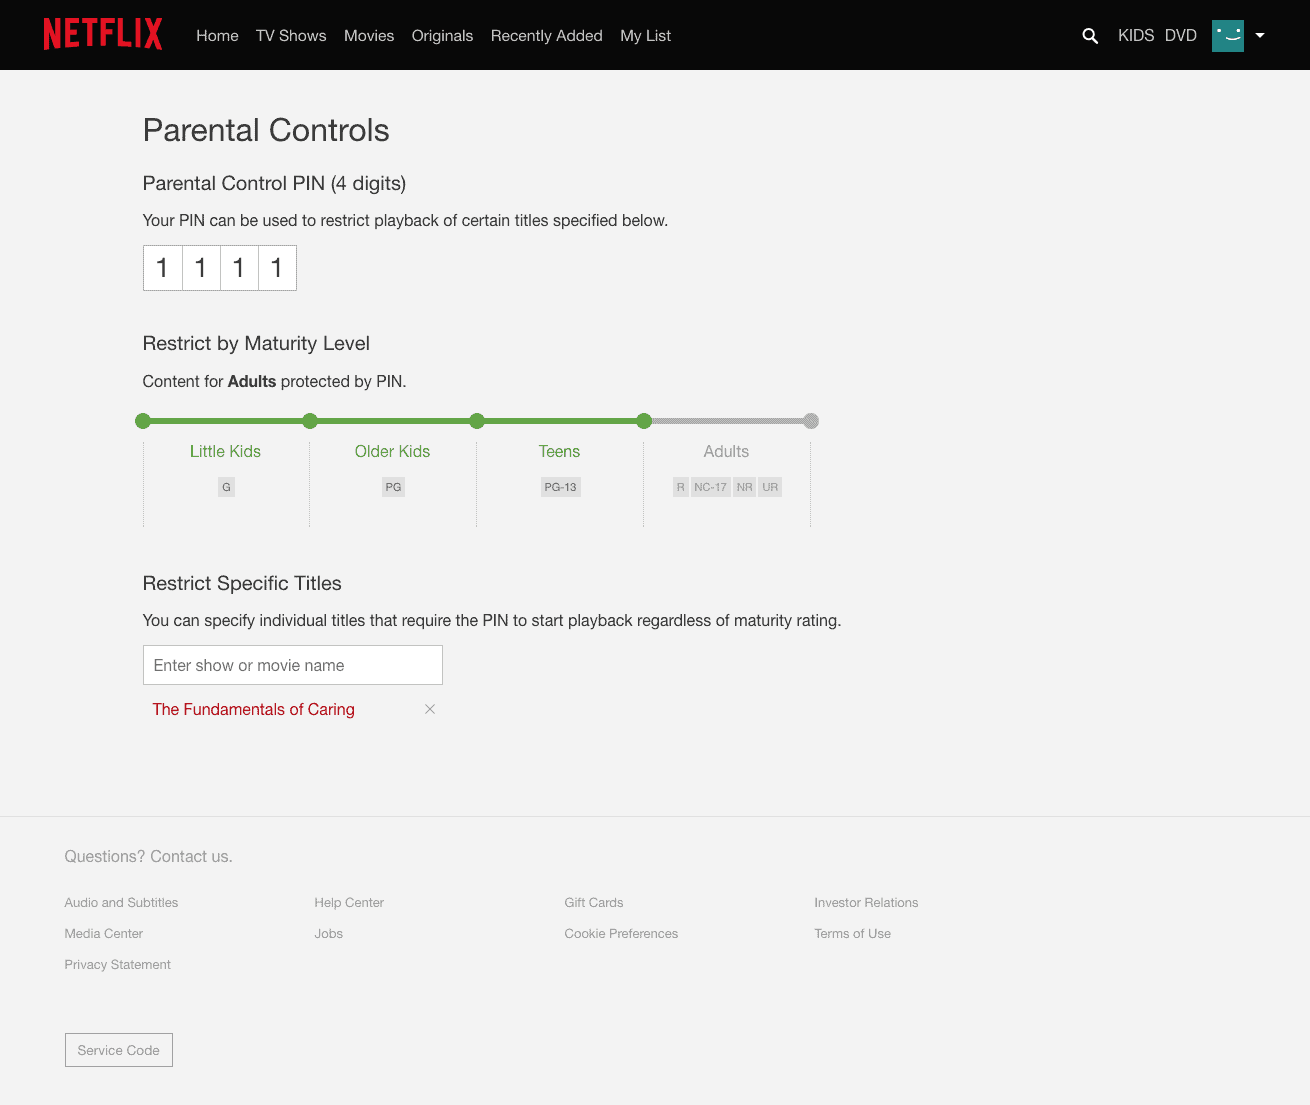 netflix pin protect titles